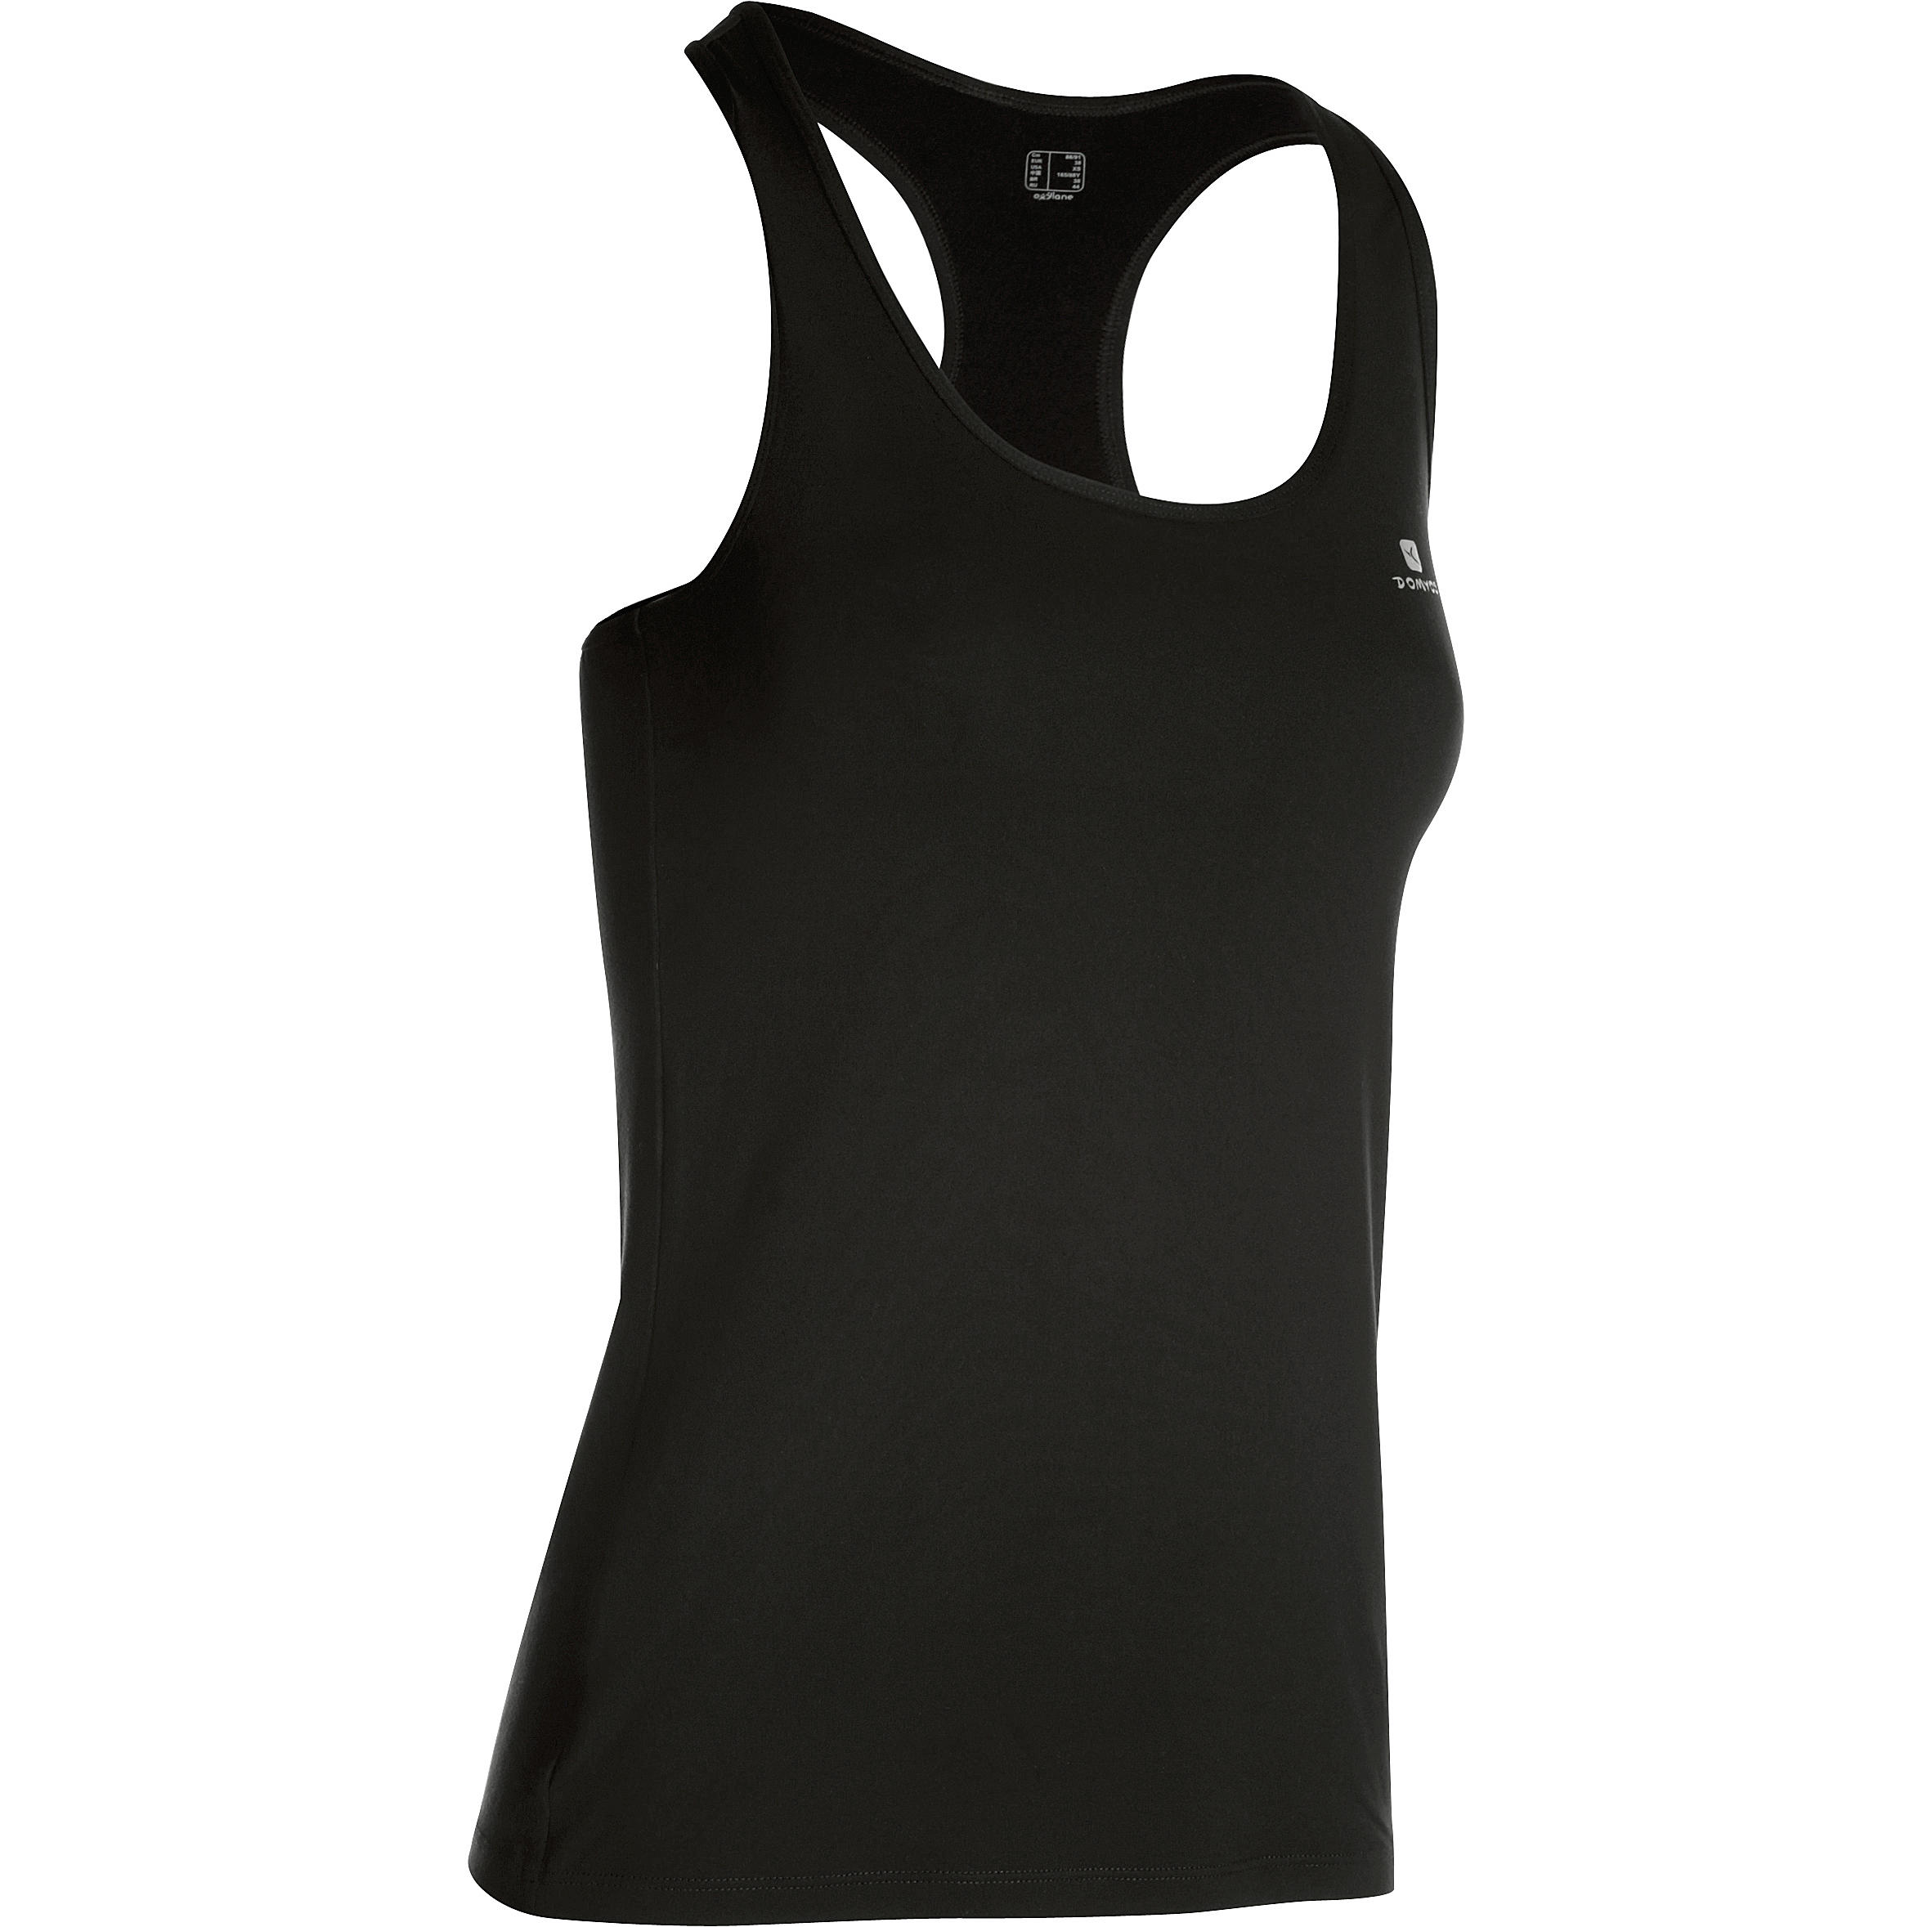 100 My Top Women's Cardio Fitness Tank Top - Black